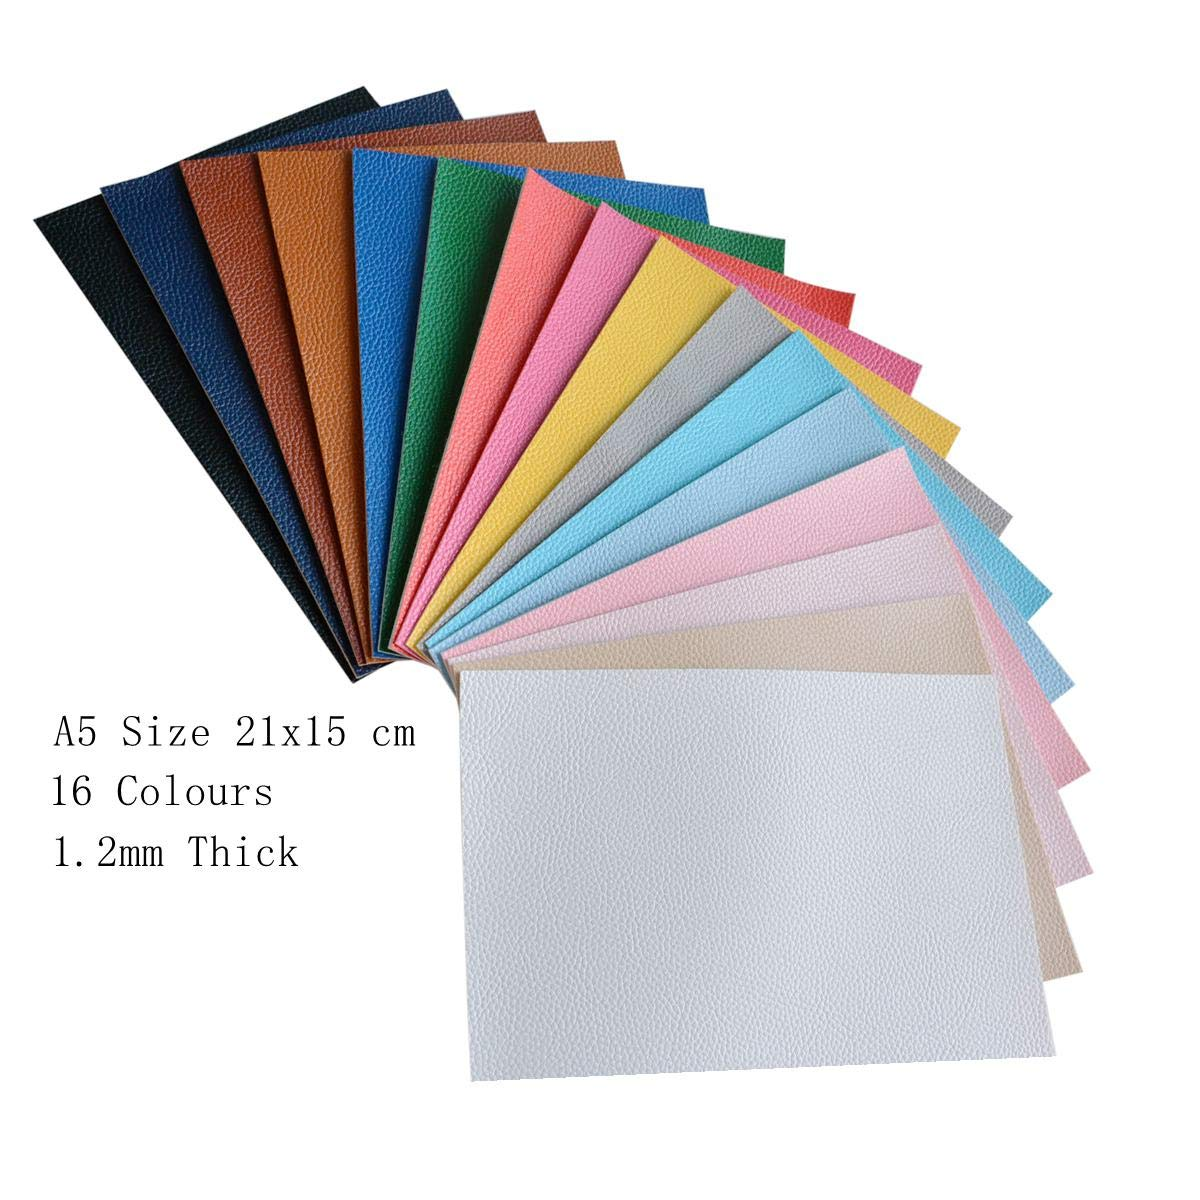 16 Pieces A5 Size Solid Color 1.2MM Thickness Litchi Grain Texture Synthetic Faux Leather Fabric Sheets Cotton Back for Making Hair Bows, Earrings, Placemats, 16 Color Each Color One Sheet by Doublefire (Image #2)